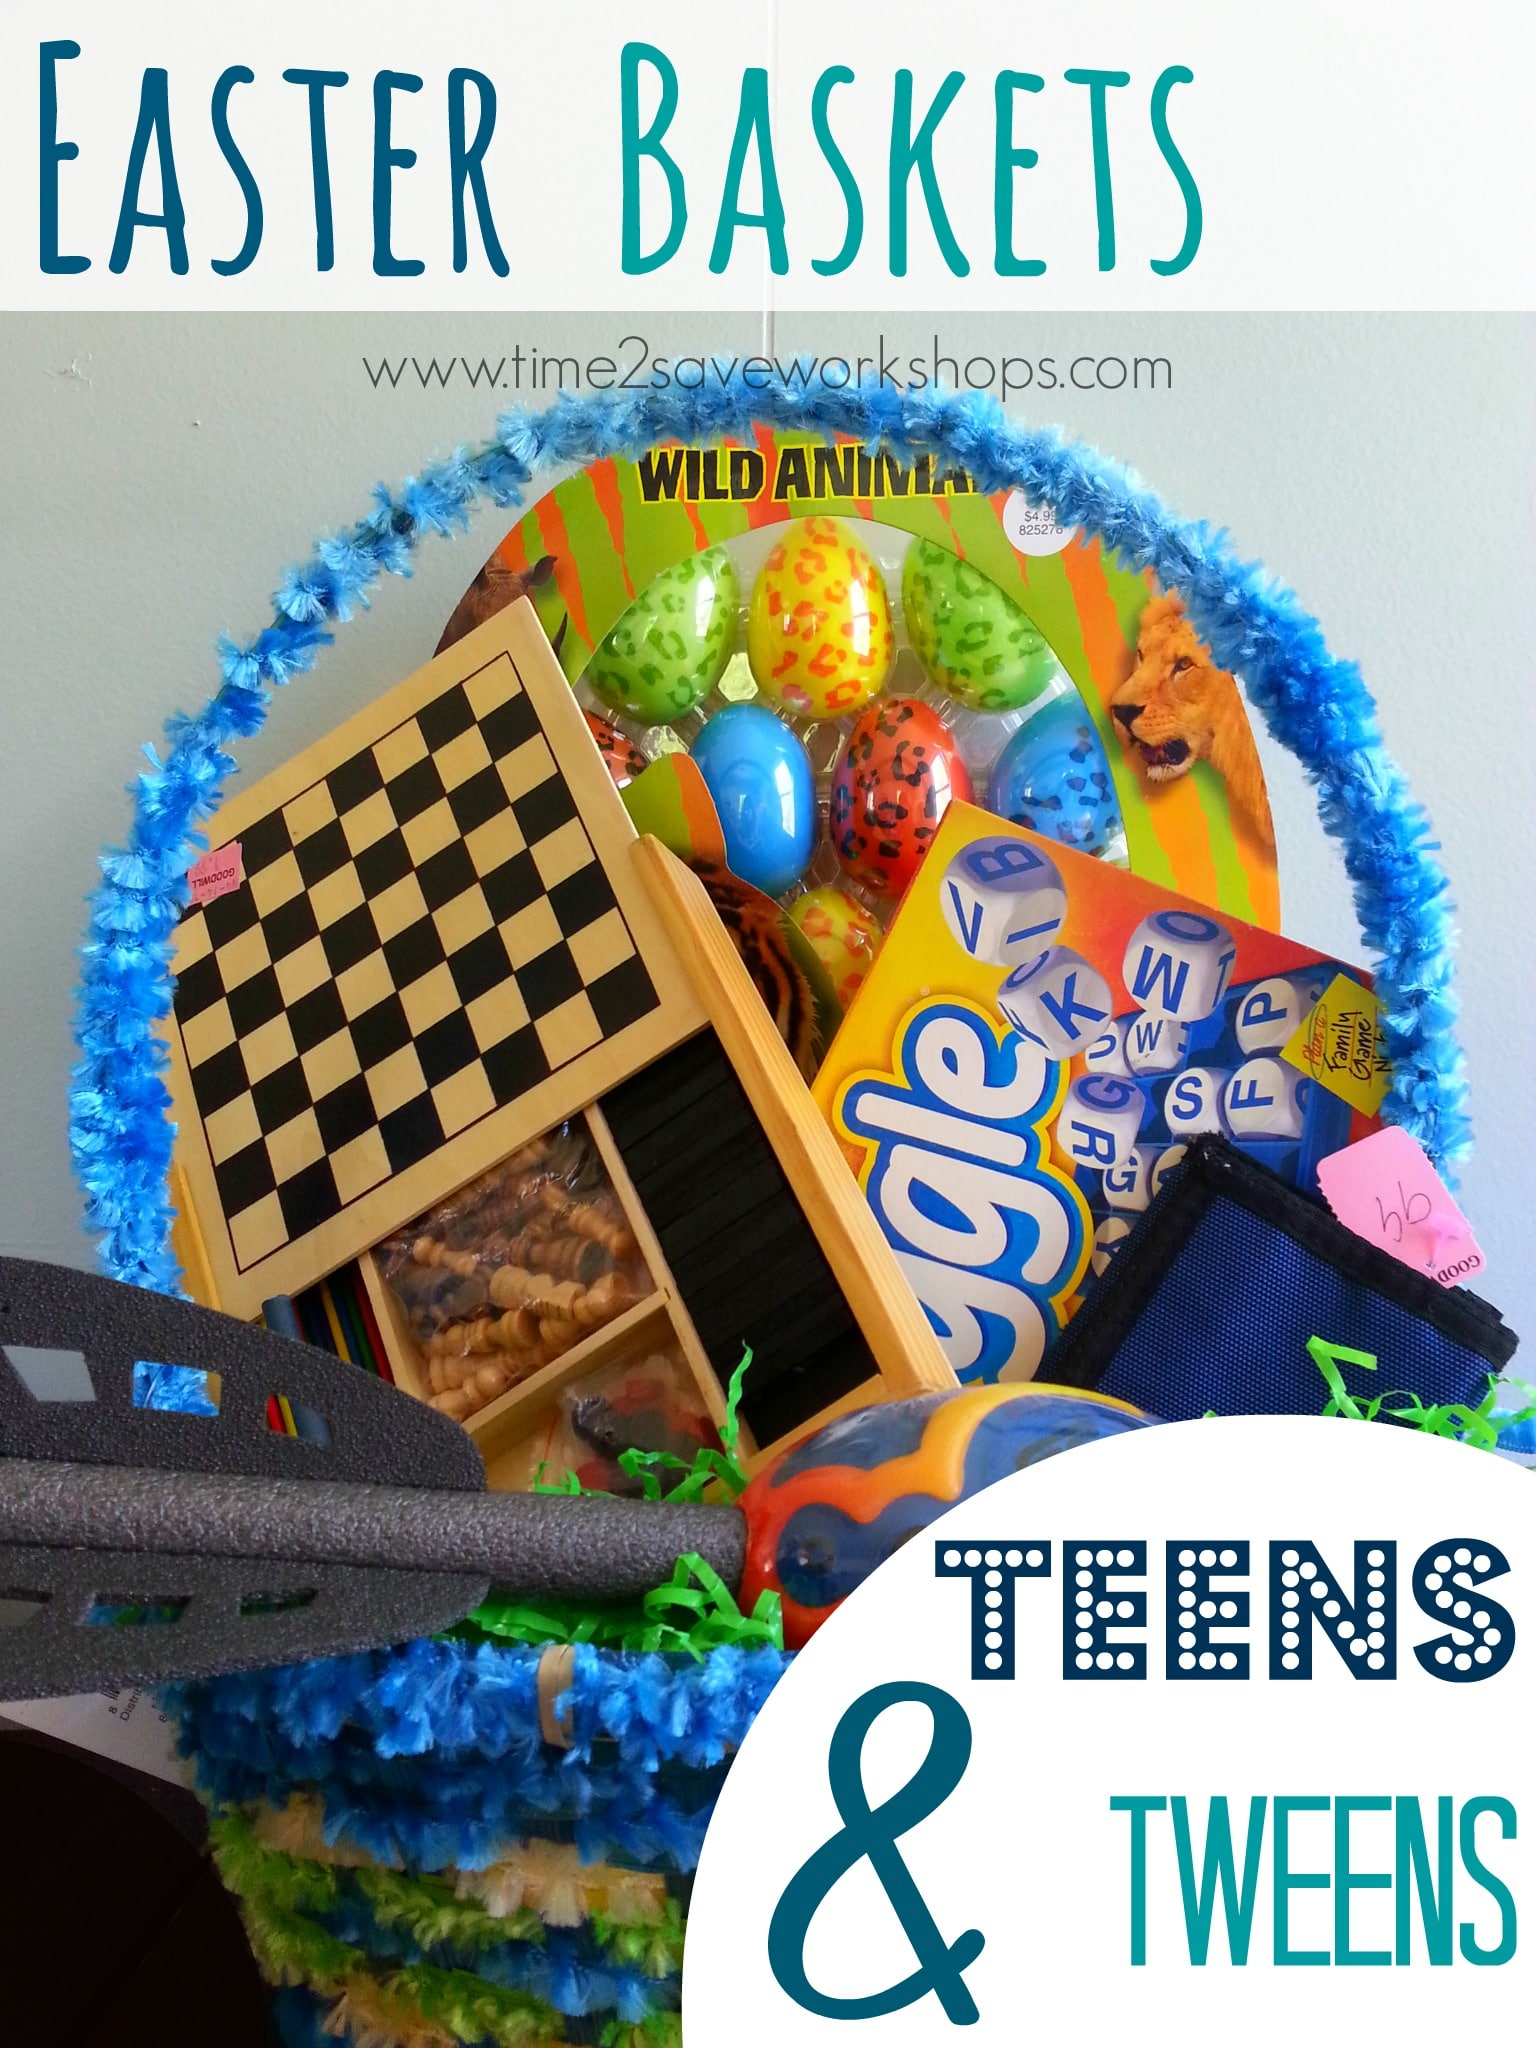 Easter baskets for teens tweens 6 frugal ideas kasey trenum negle Gallery